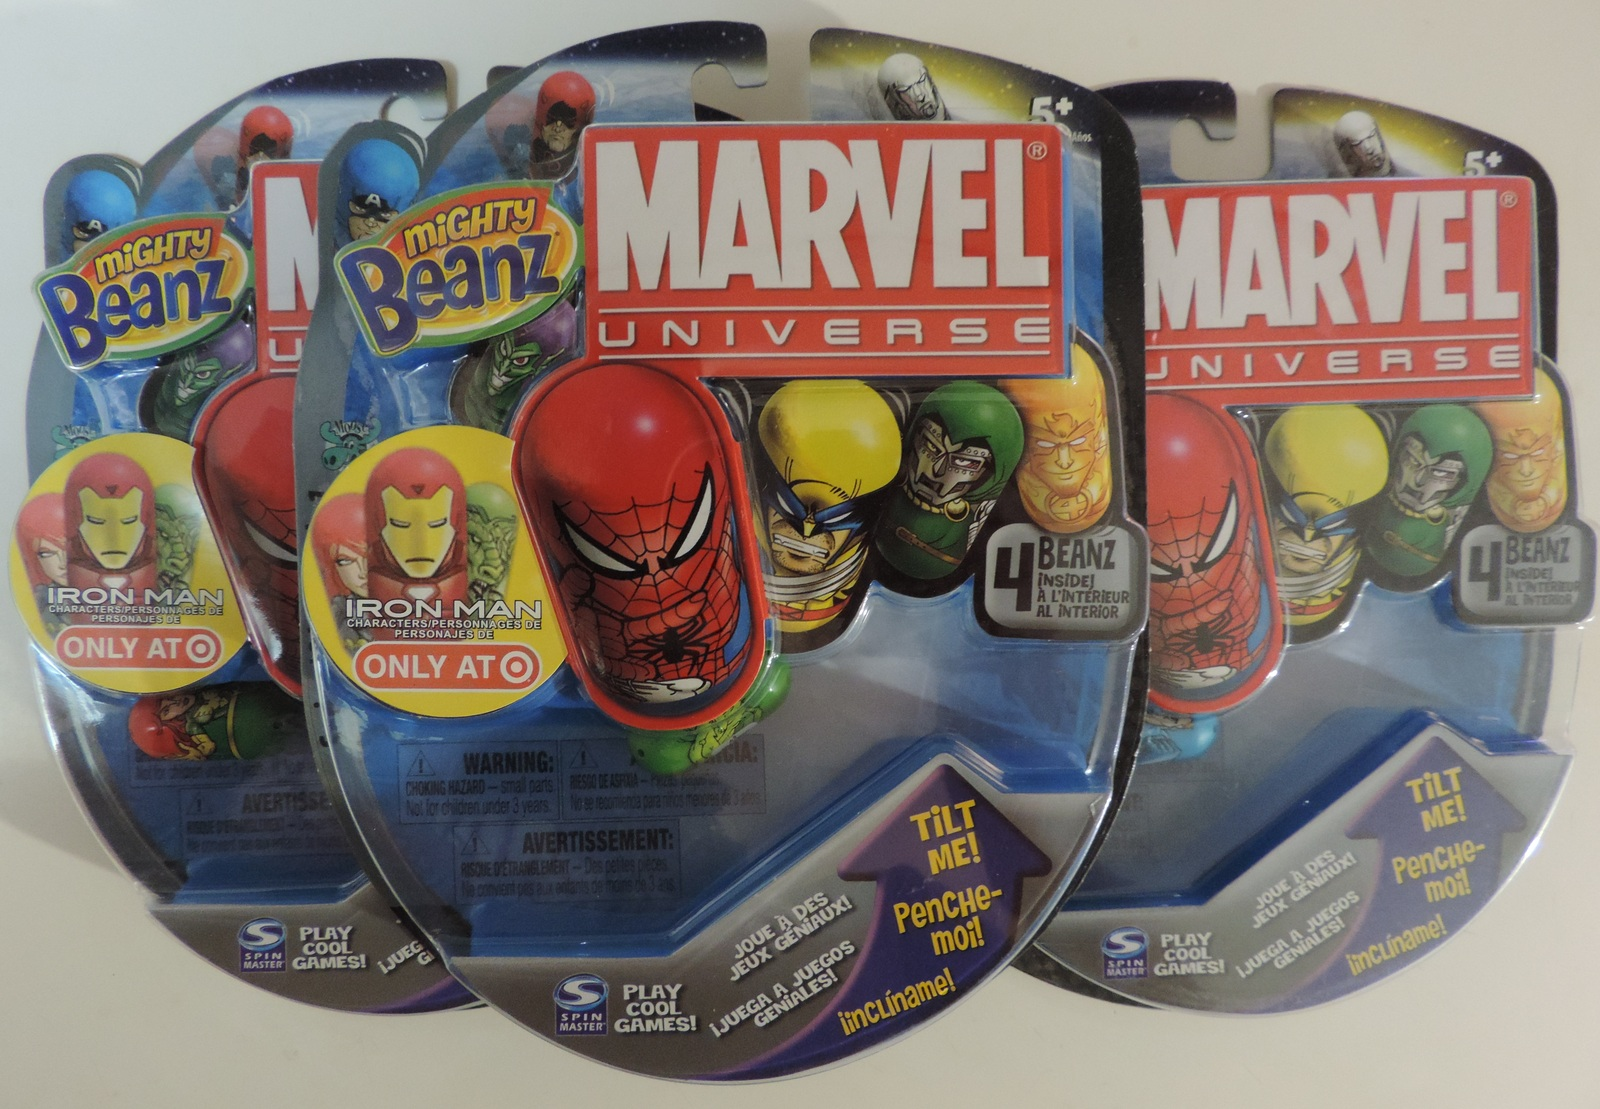 Image 7 Of 50 Coleo Mighty Beanz Srie 1 Completa